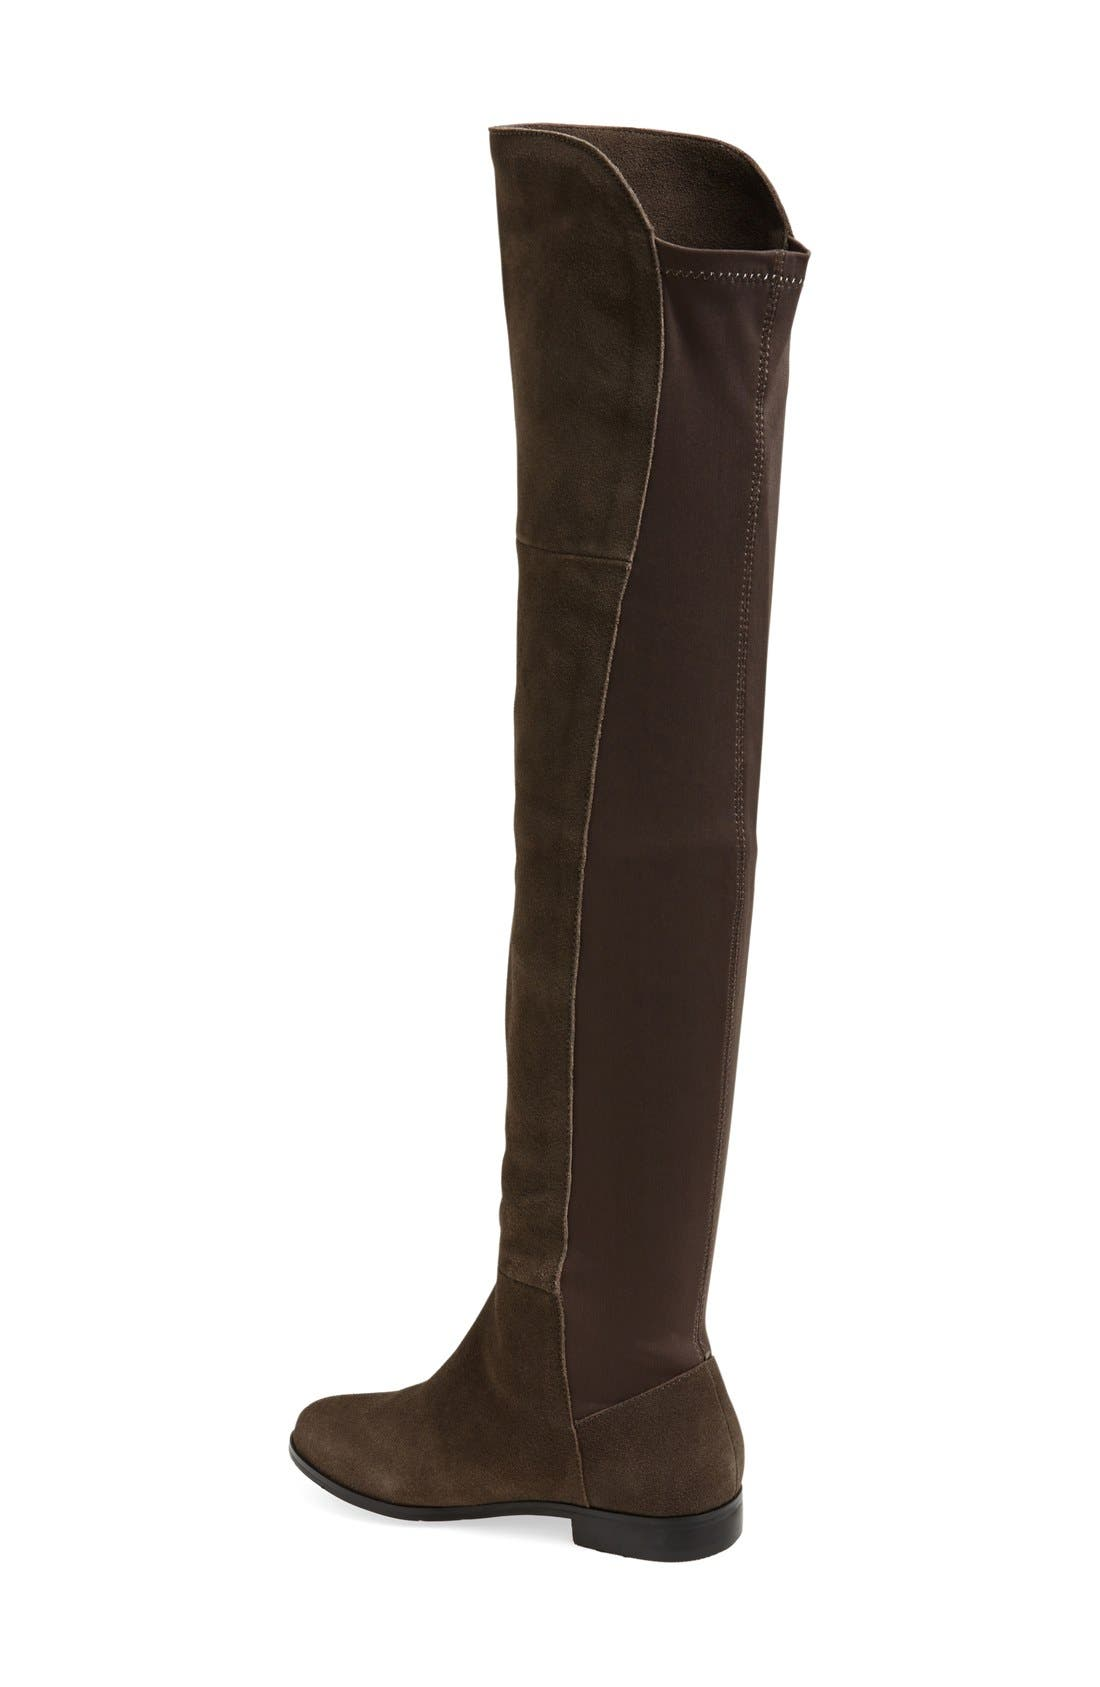 Alternate Image 2  - Chinese Laundry 'Radiance' Over The Knee Boot (Women)